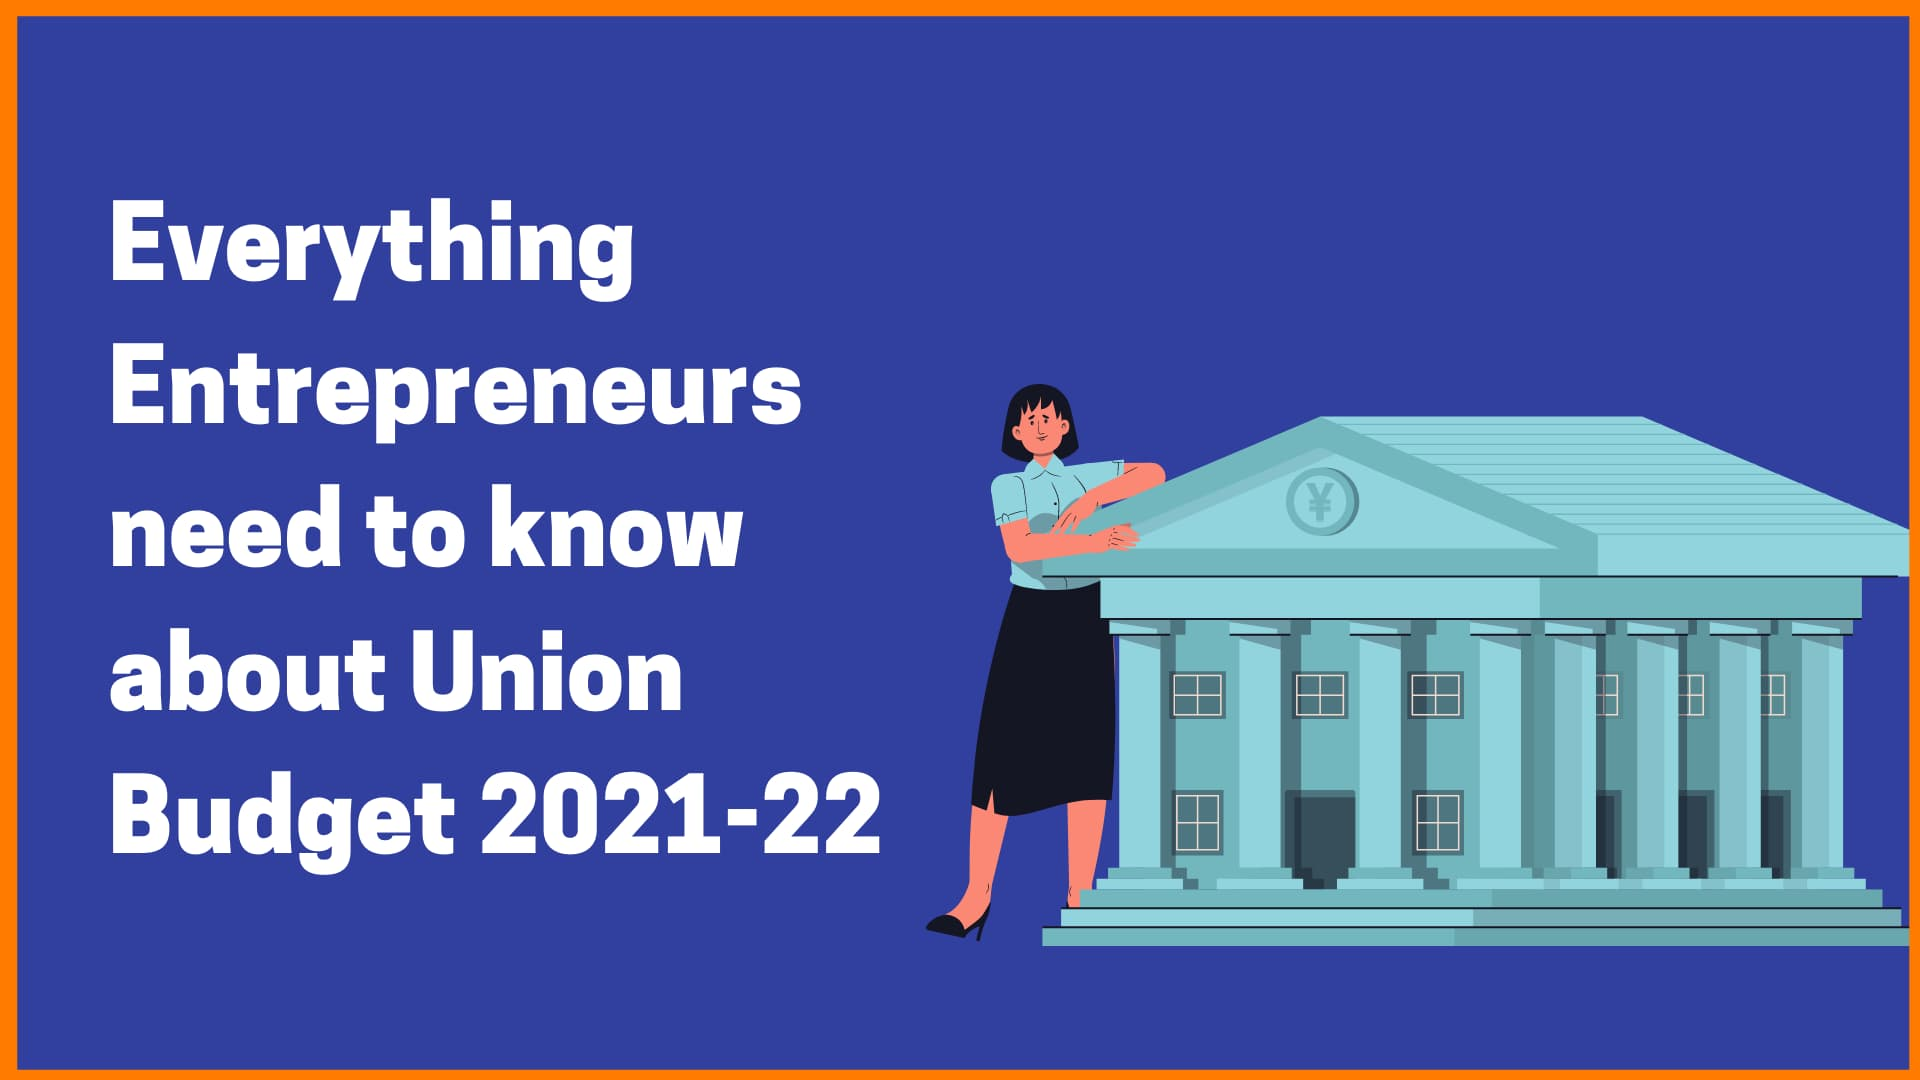 Everything Entrepreneurs need to know about Union Budget 2021-22